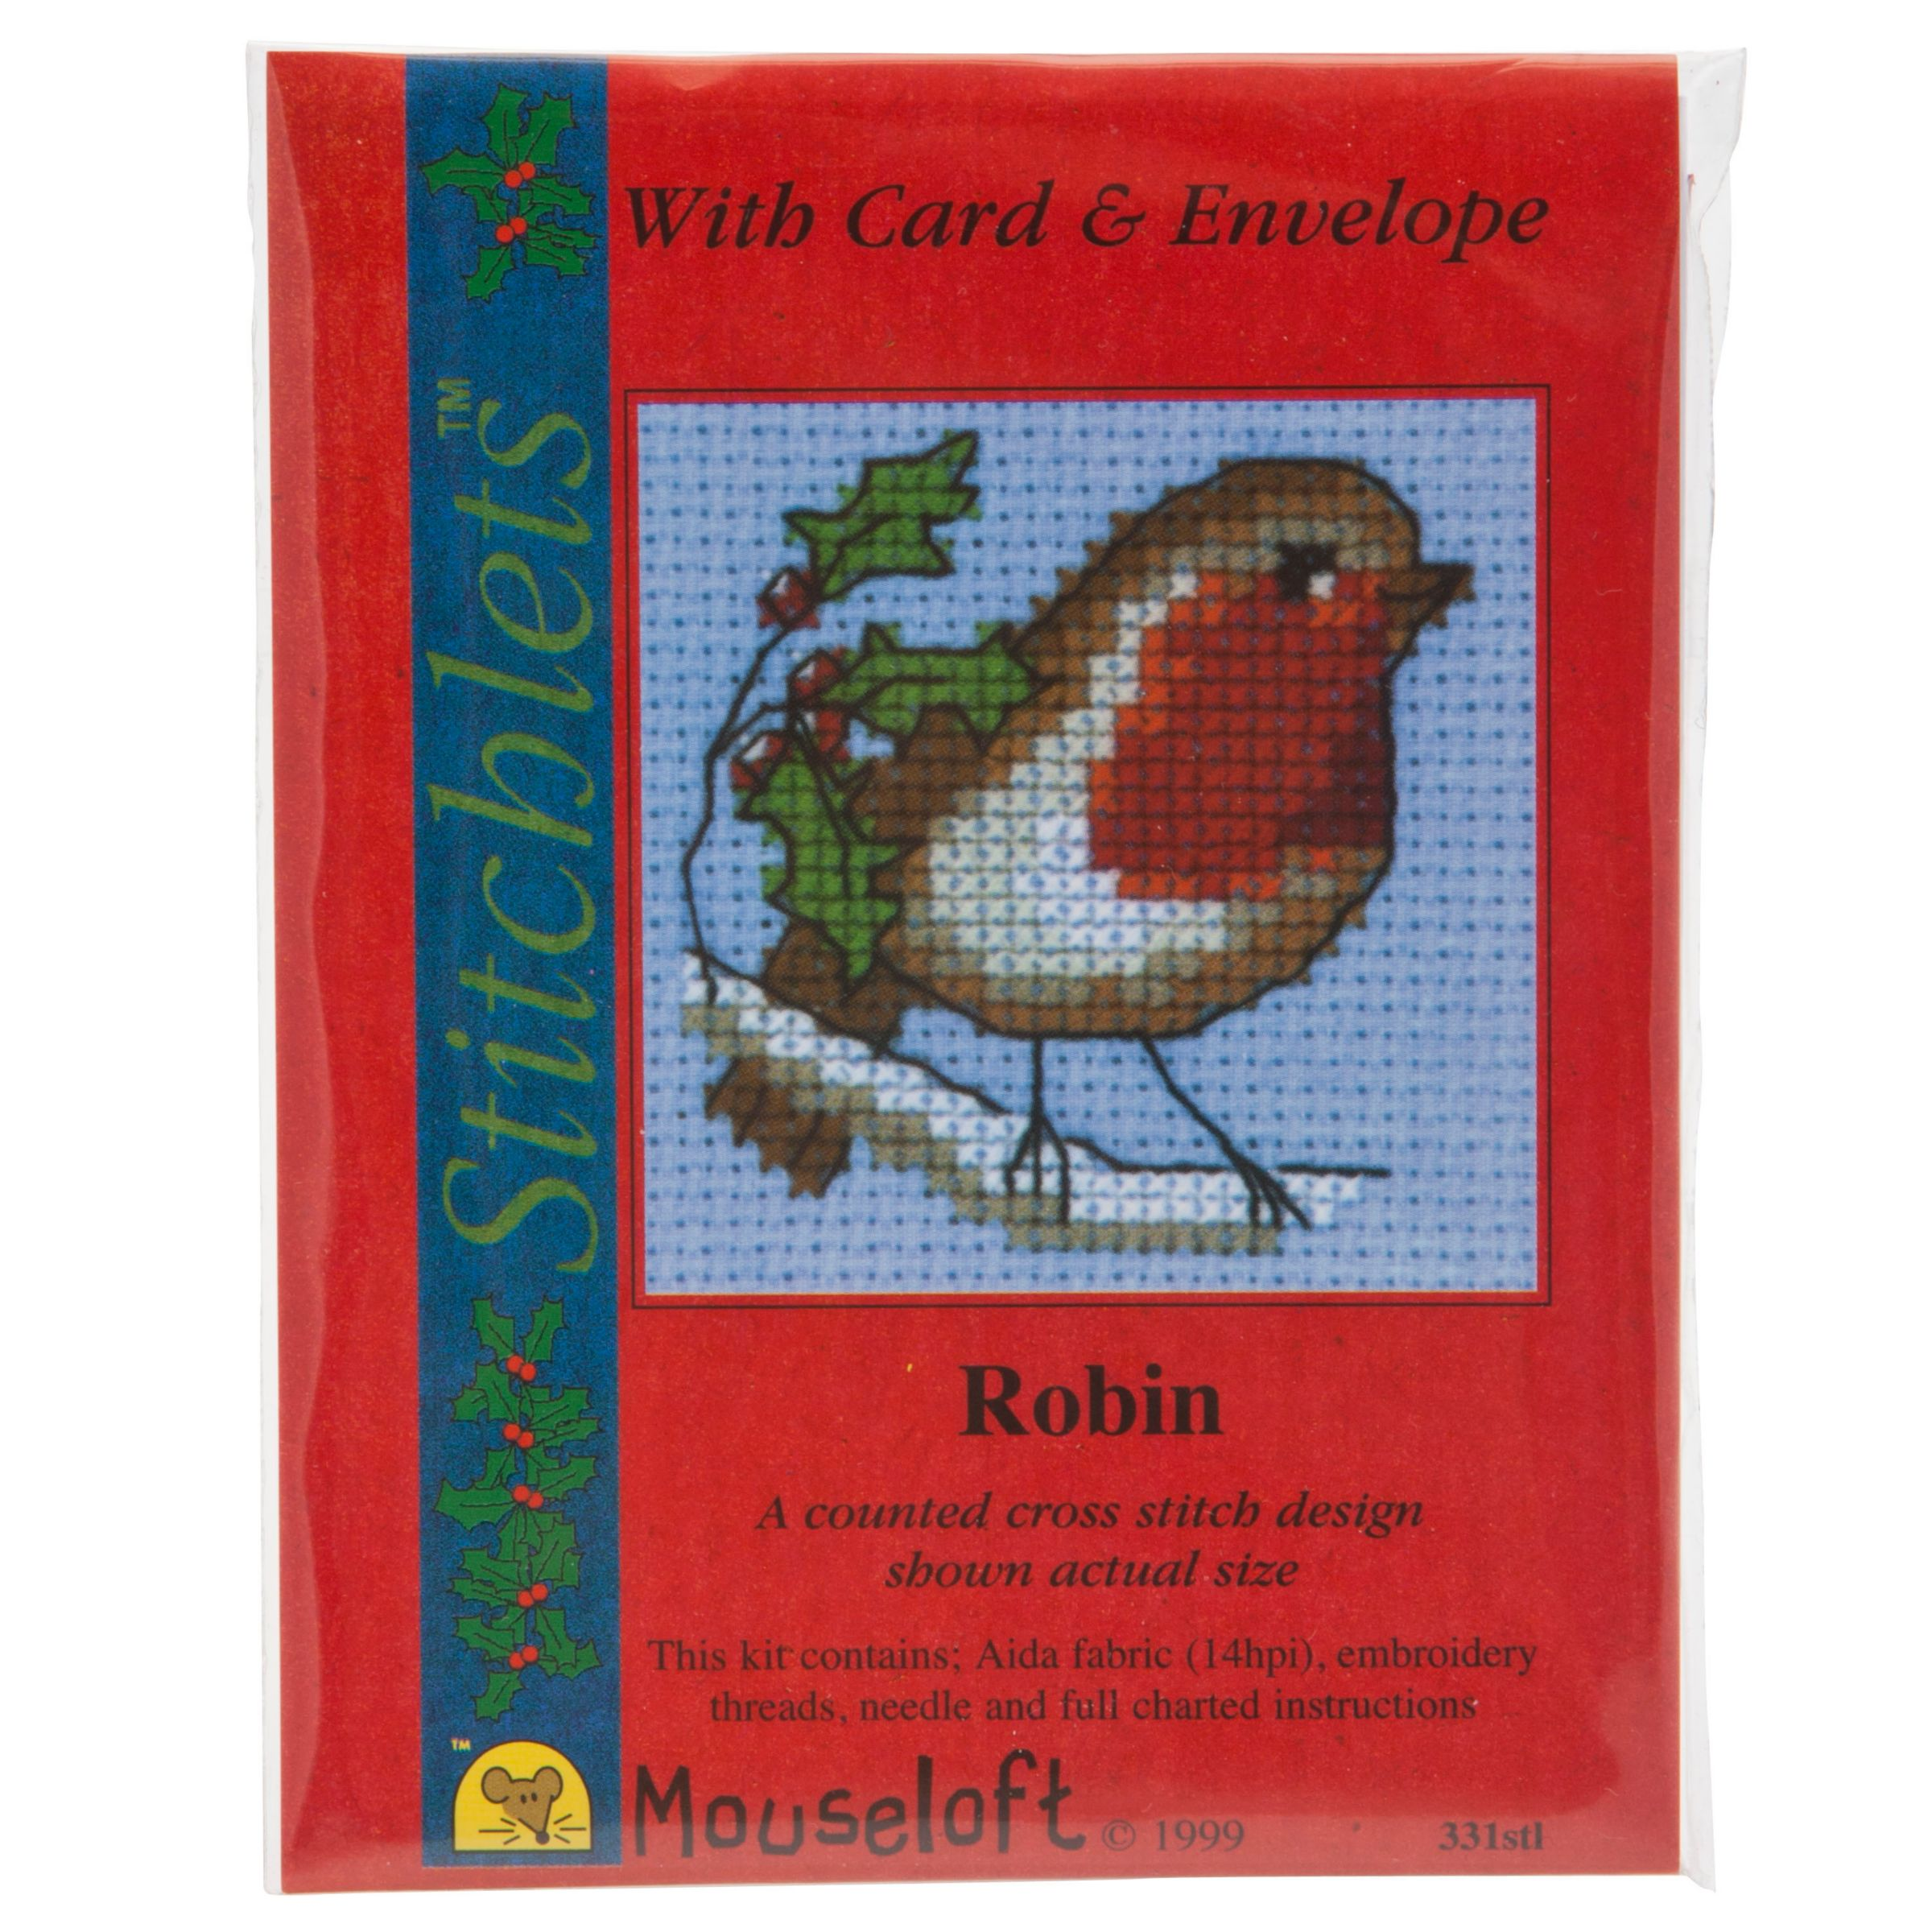 Mouseloft Cross-Stitch Kit, Red Robin